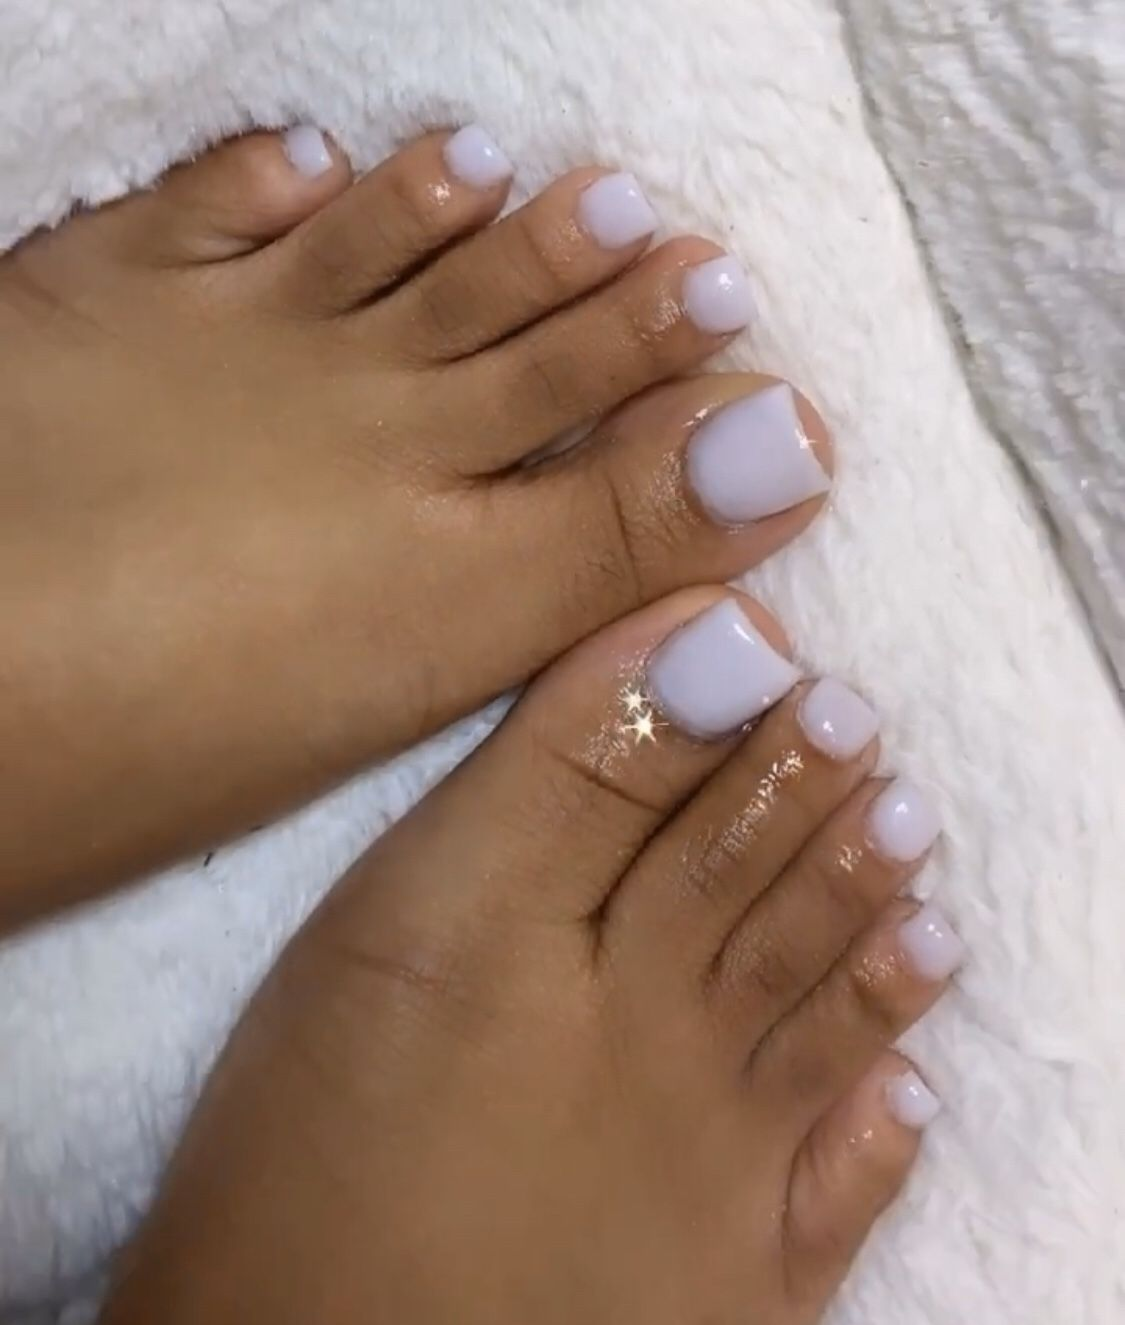 White Toes In 2020 Gel Toe Nails Acrylic Toe Nails Acrylic Toes